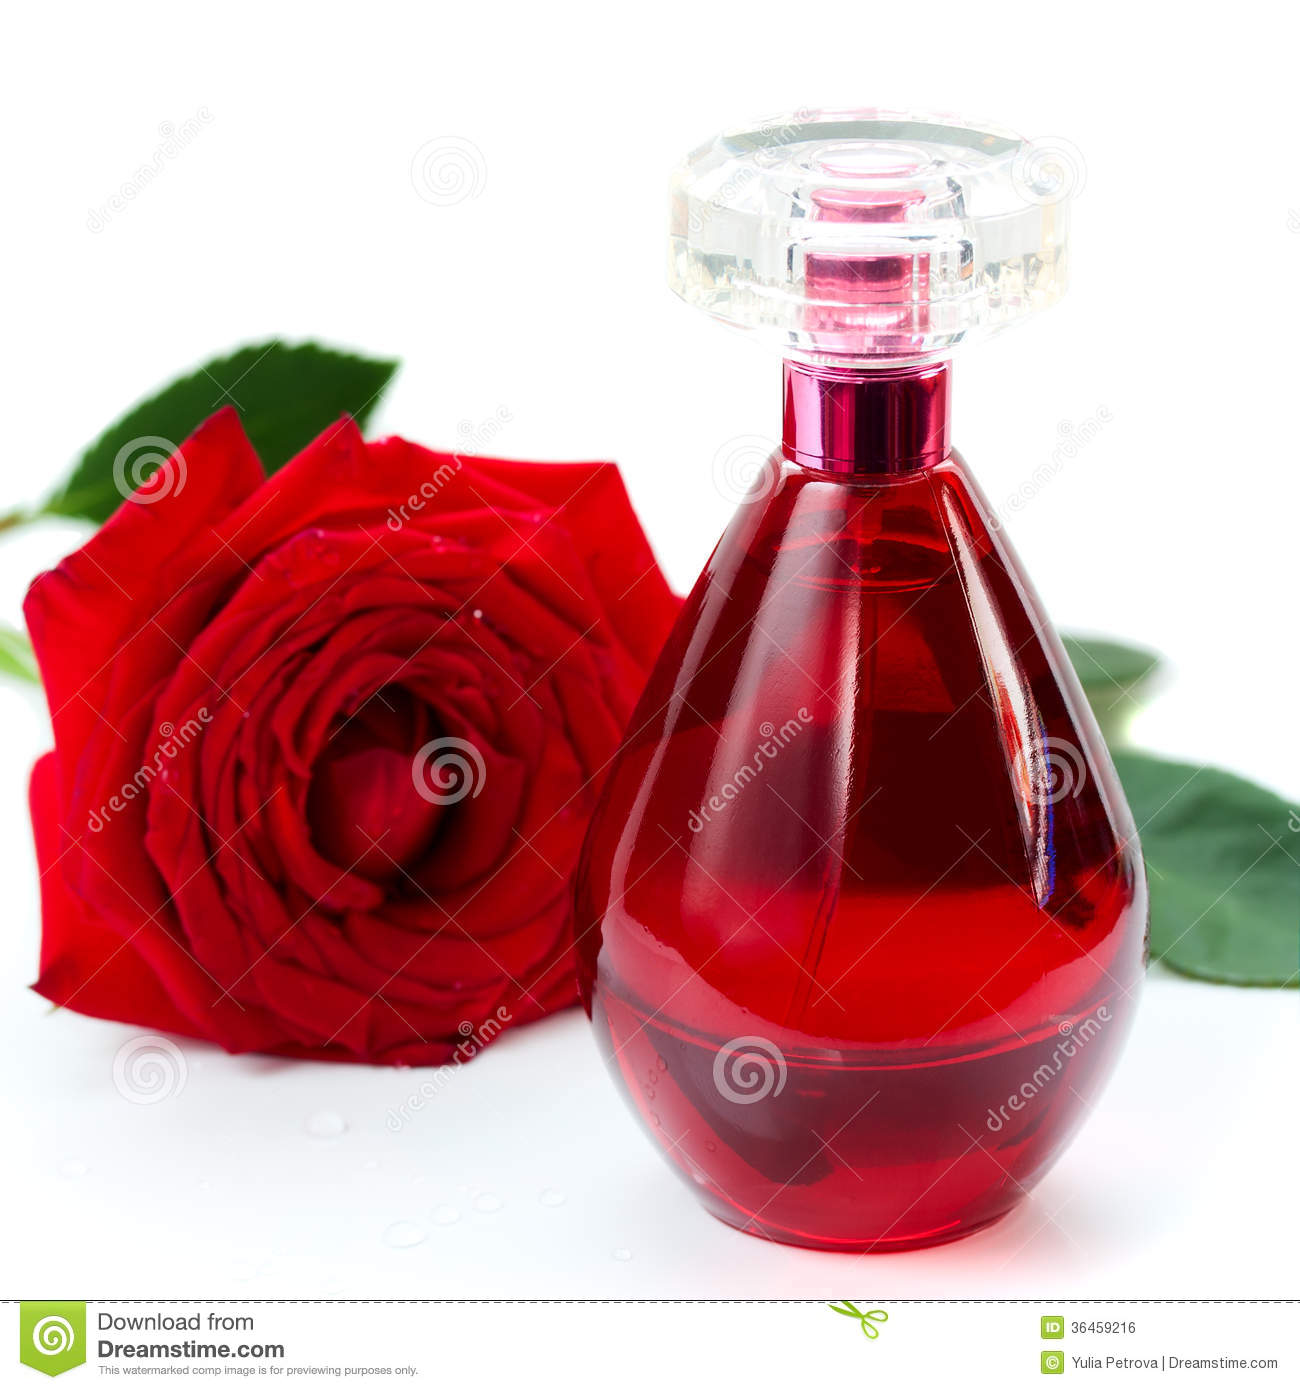 Perfume bottle and a red rose stock photo image 36459216 - Botellas para perfumes ...